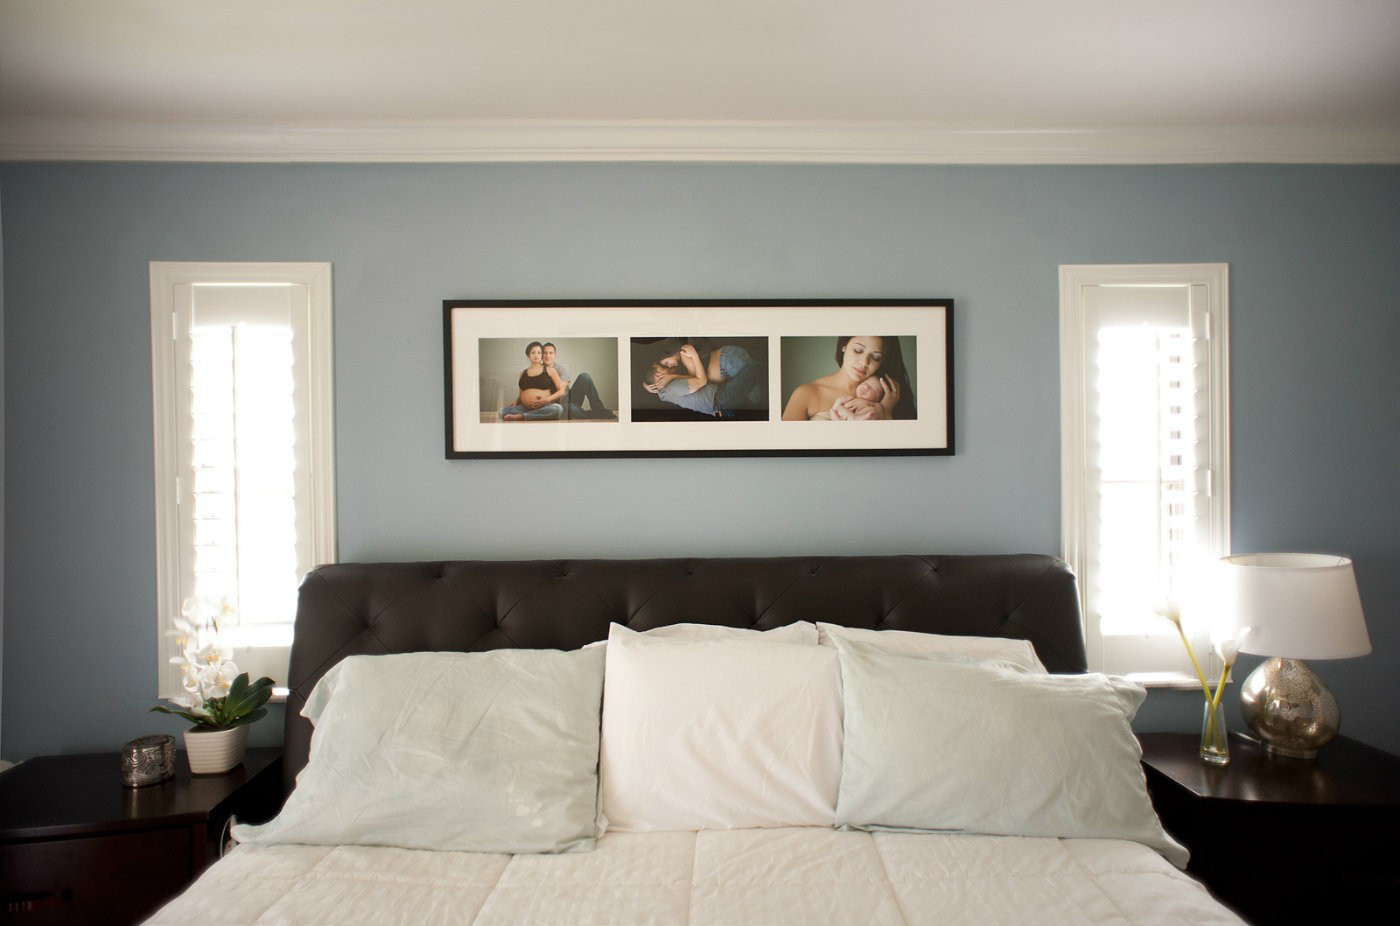 Inspirational Master Bedroom Wall Décor